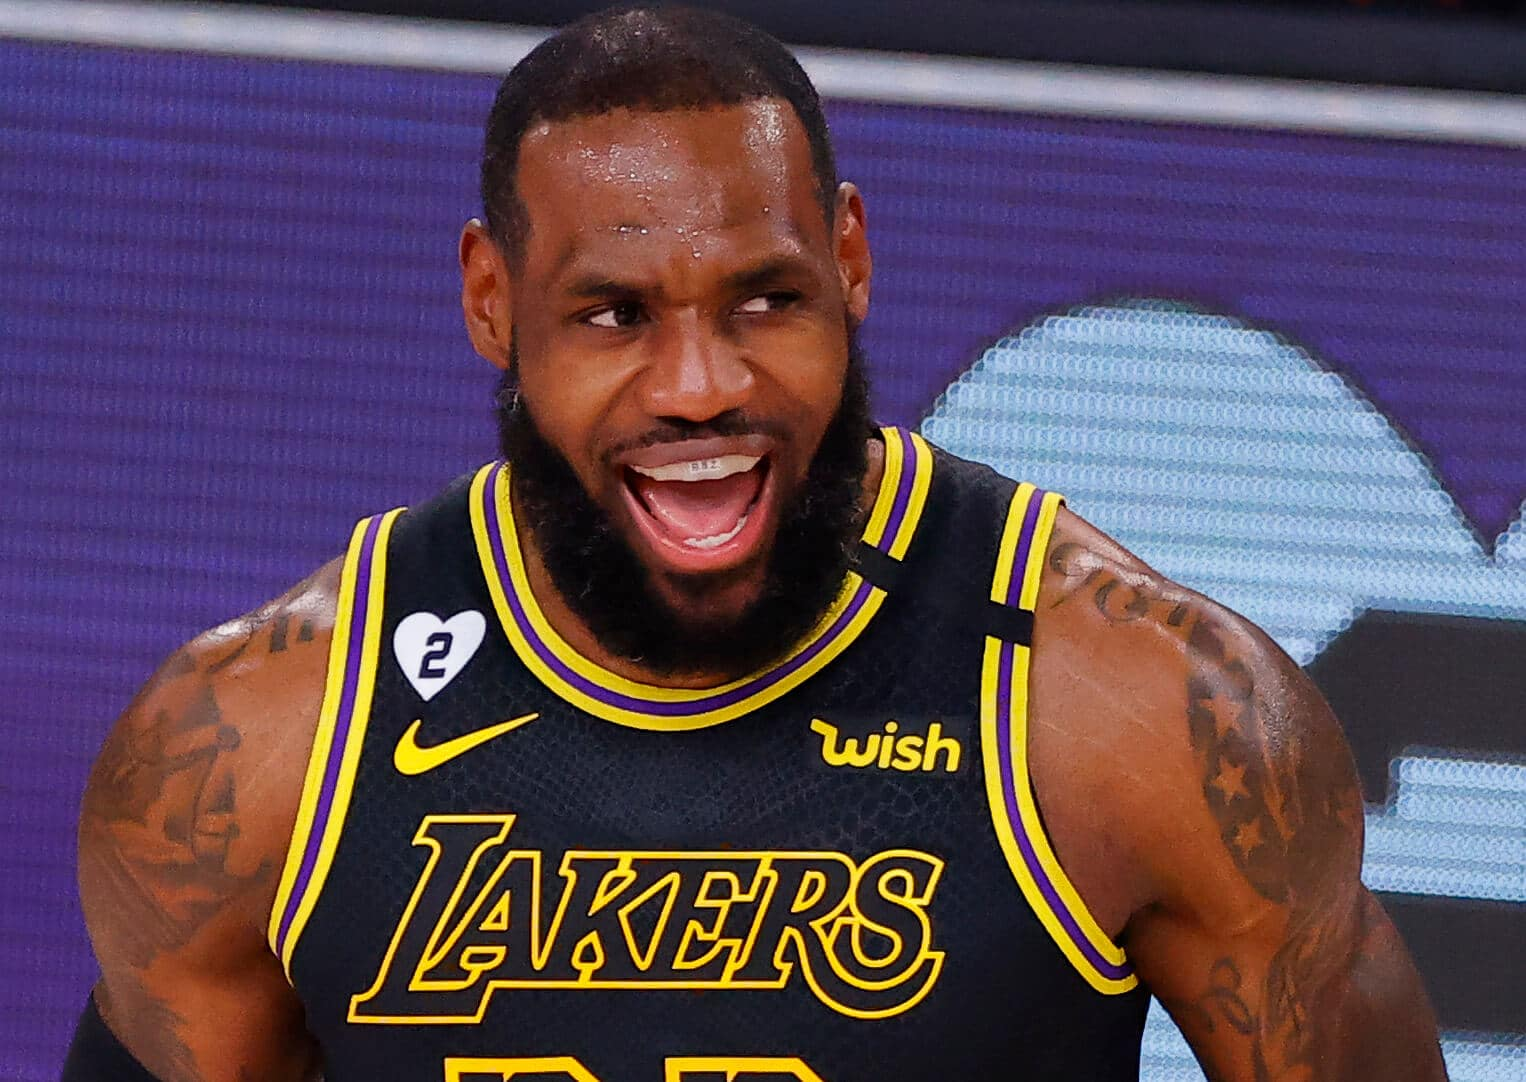 Best quotes by LeBron James